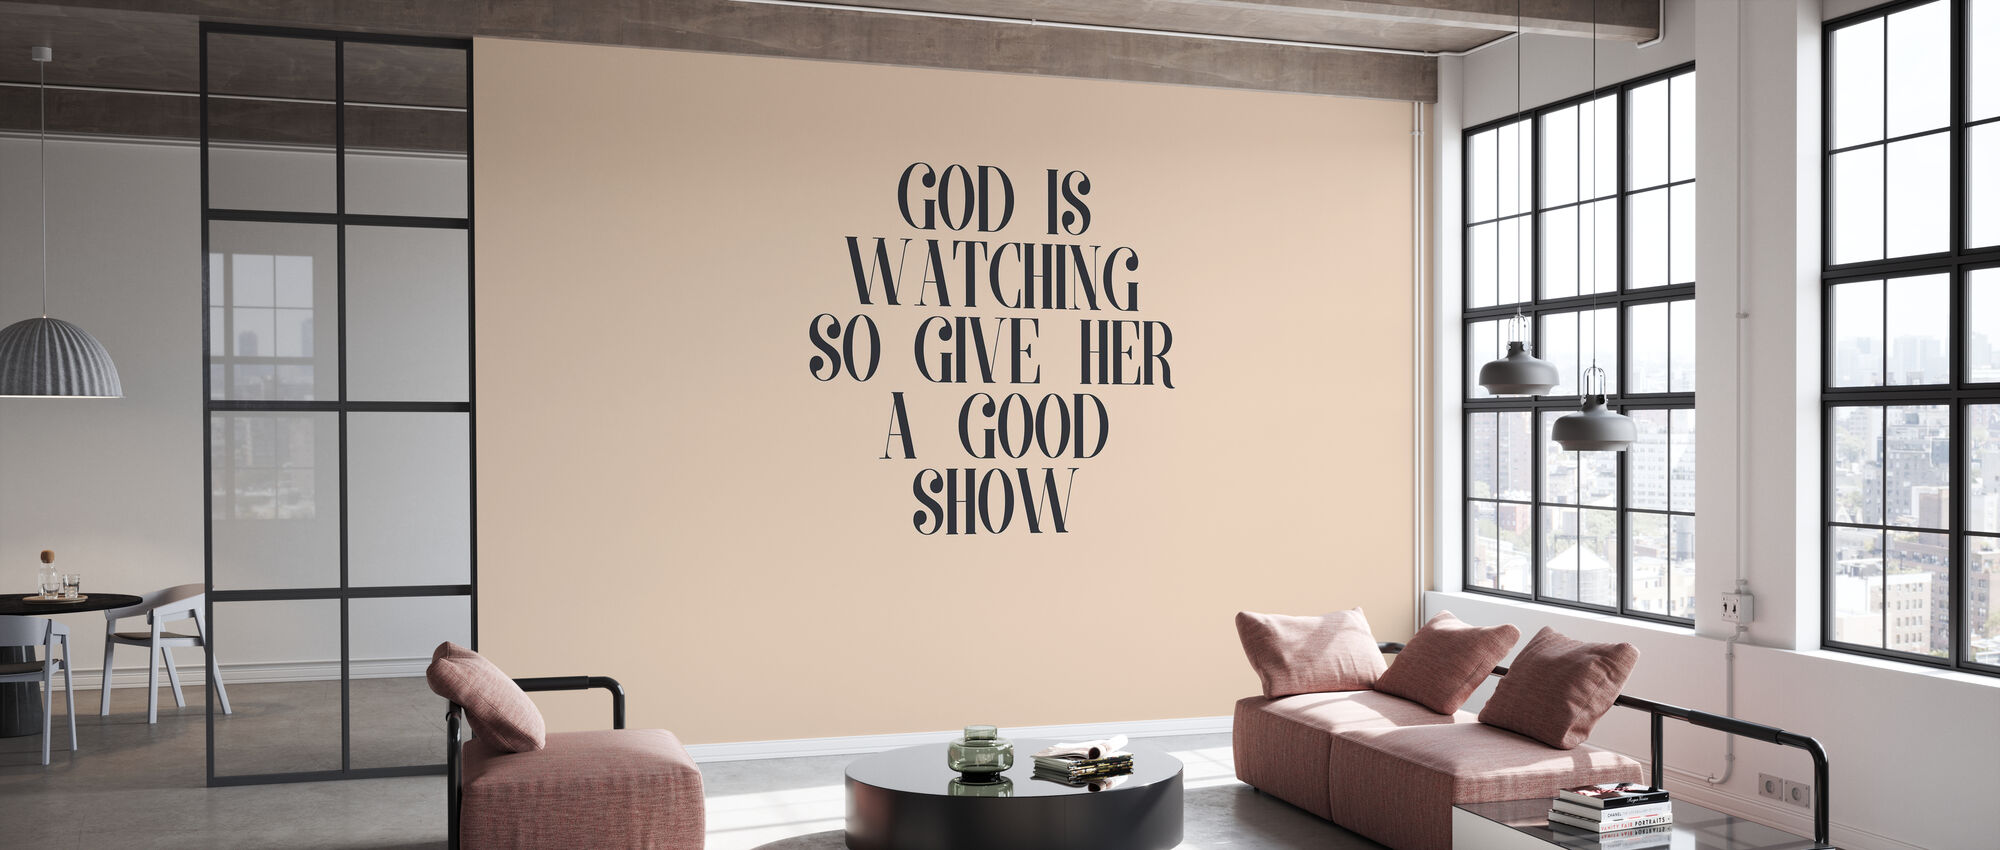 God is Watching - Wallpaper - Office